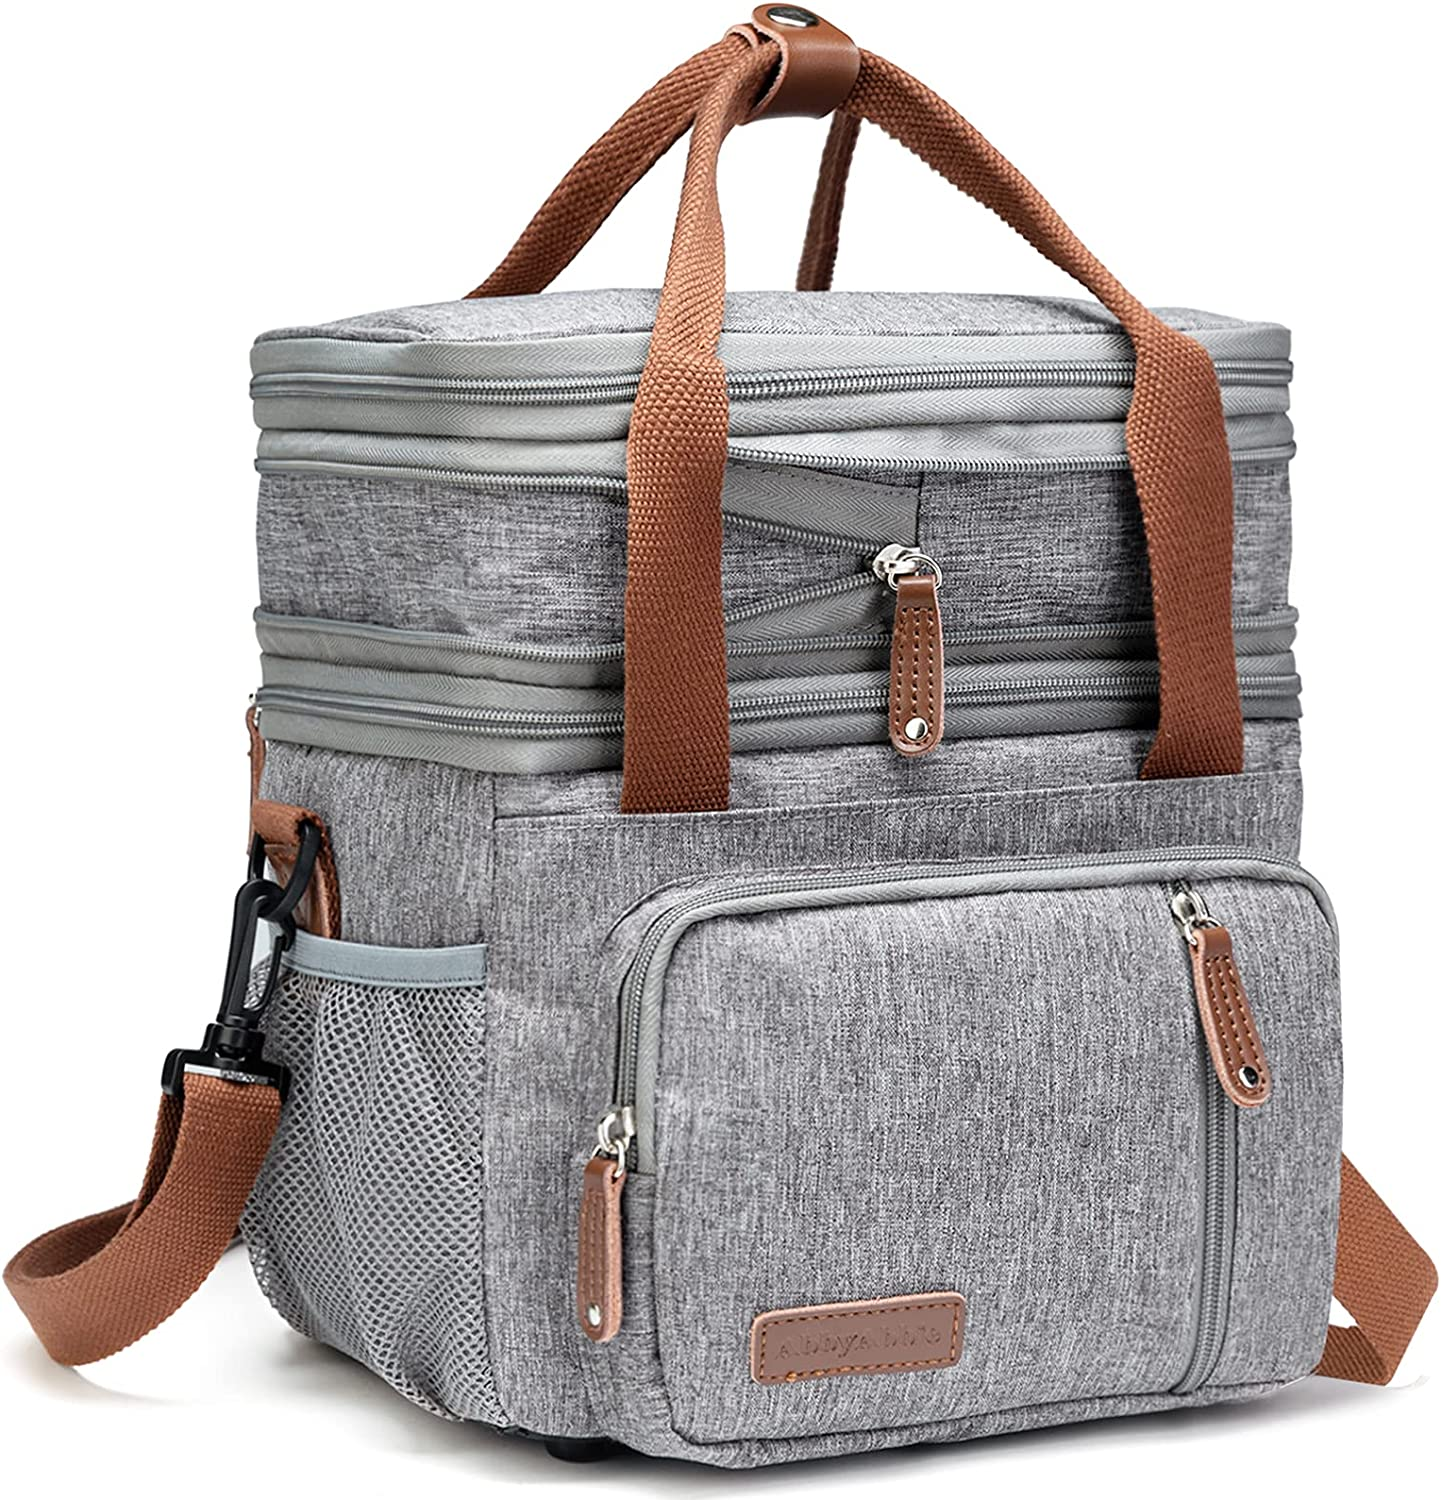 Expandable Insulated Cooler Lunch Bag,Large Lunch Bags for Women/Men -with Adjustable & Removable Shoulder Strap, Reusable lunch Box Container ,Leakproof Cooler Tote Bag for Work /Kids/School/ Picnic